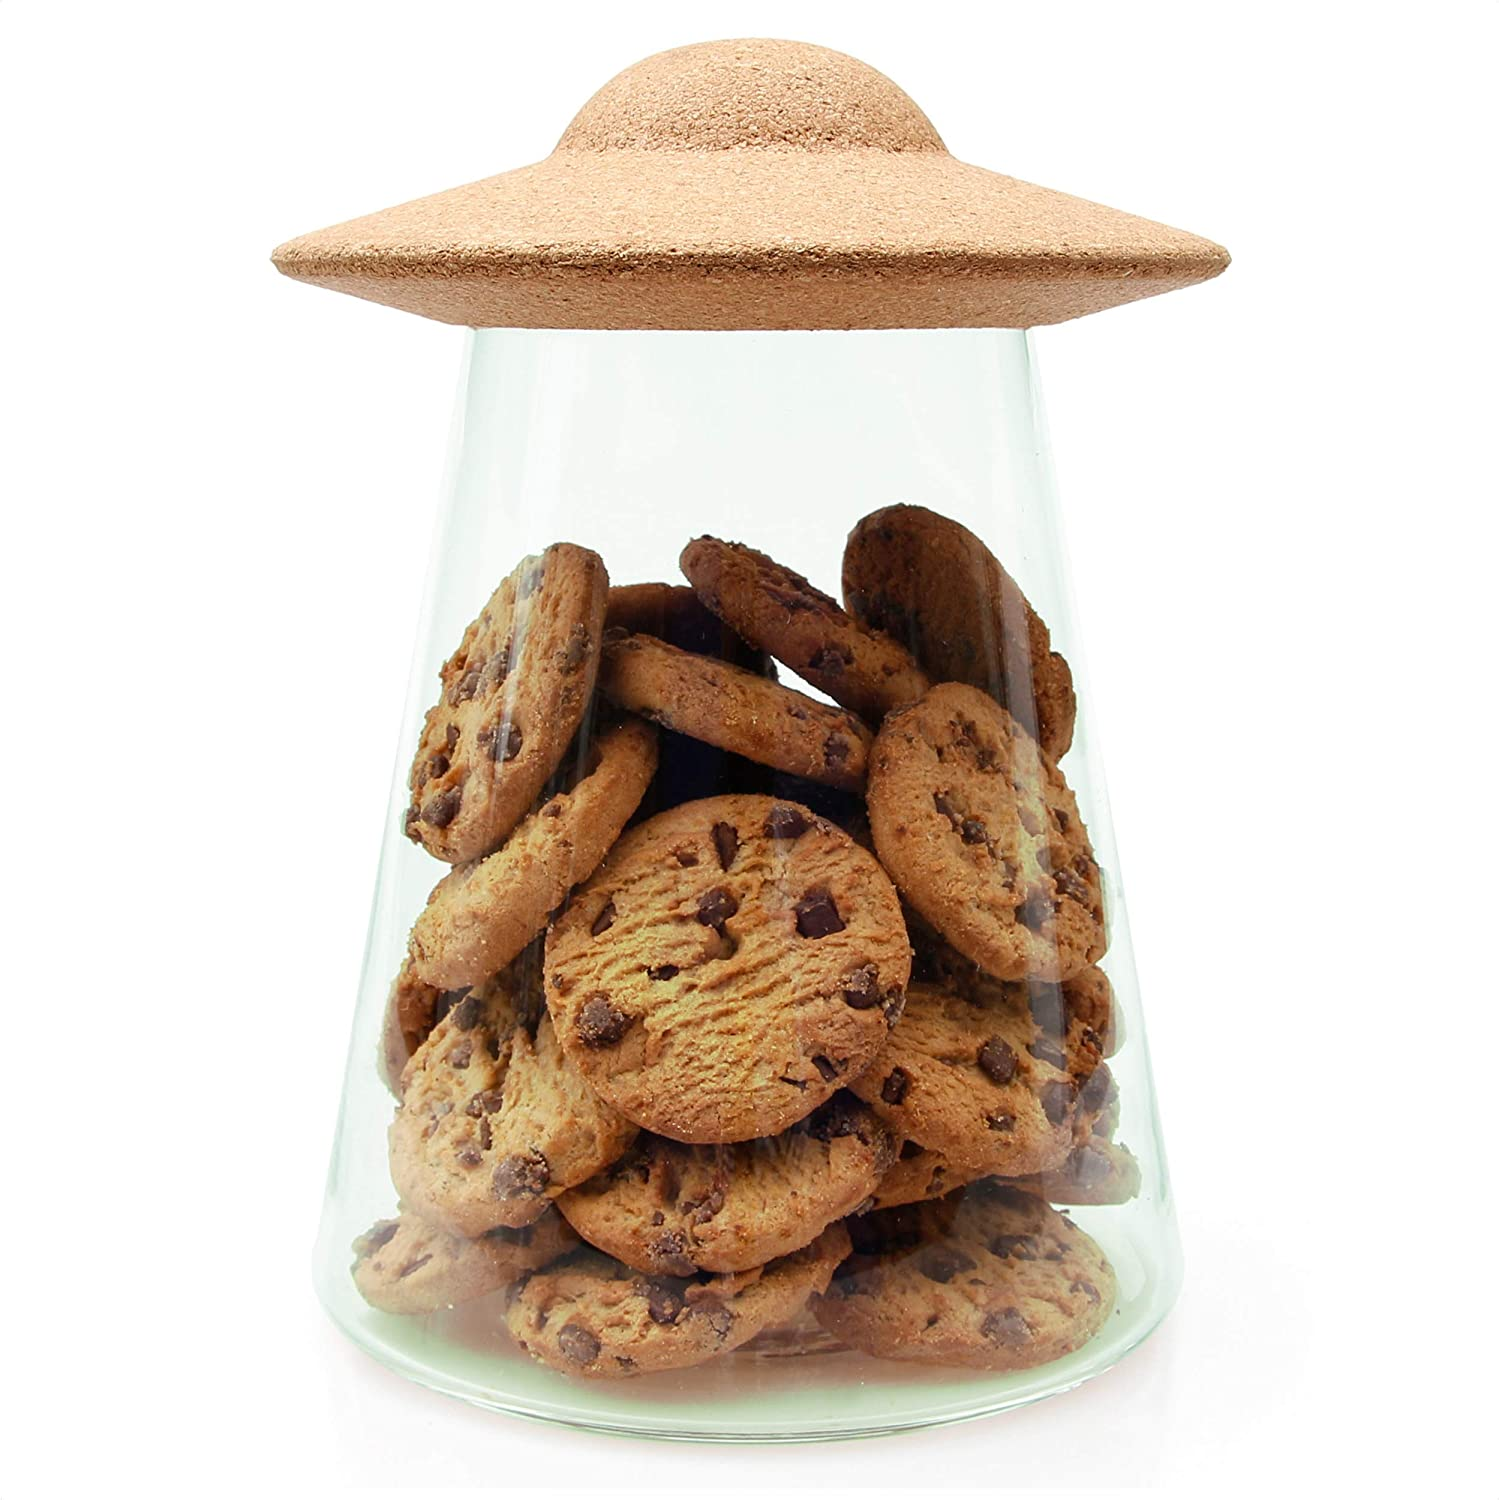 Suck Uk Sk Storeufo1 Ufo Food Containers With Lids Cookie Jar Glass Pantry Storage One Size Amazon Ca Home Kitchen